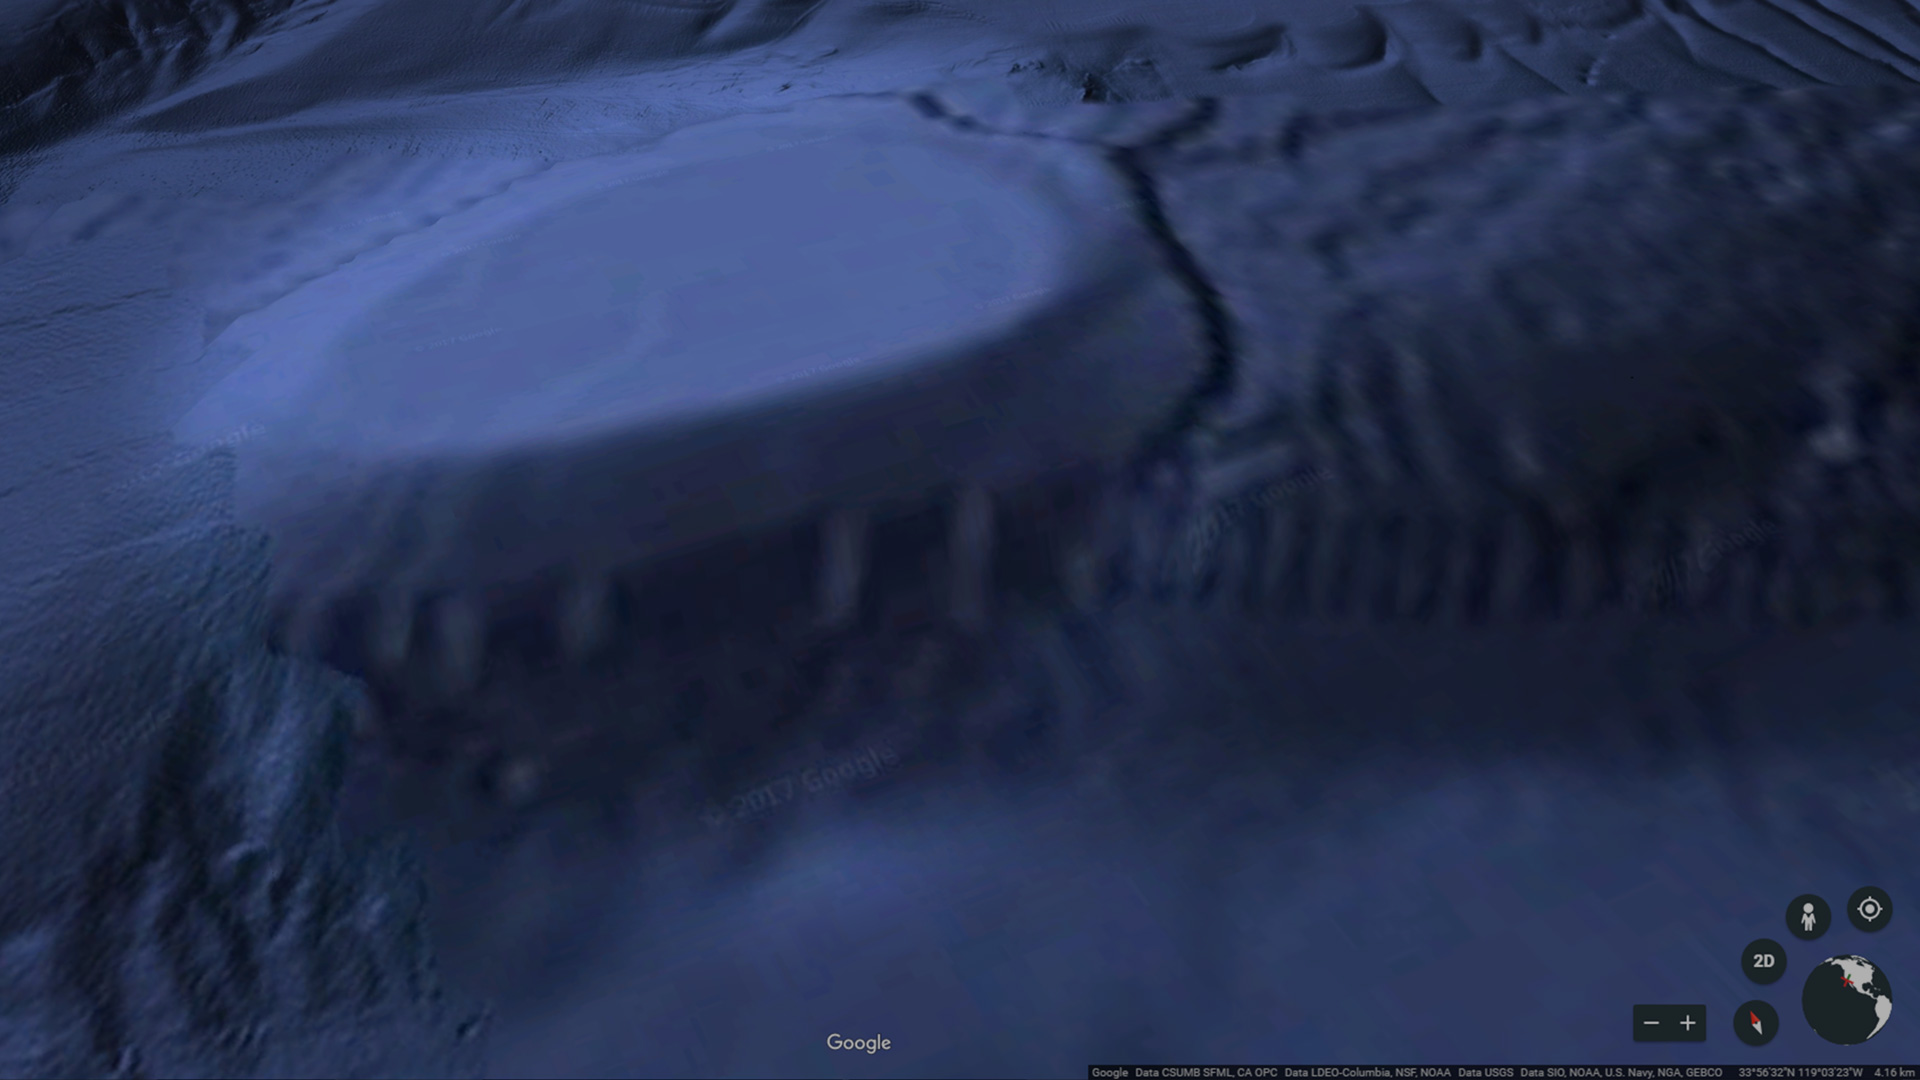 The underwater anomaly as seen on Google Earth, off the coast of Malibu, CA.